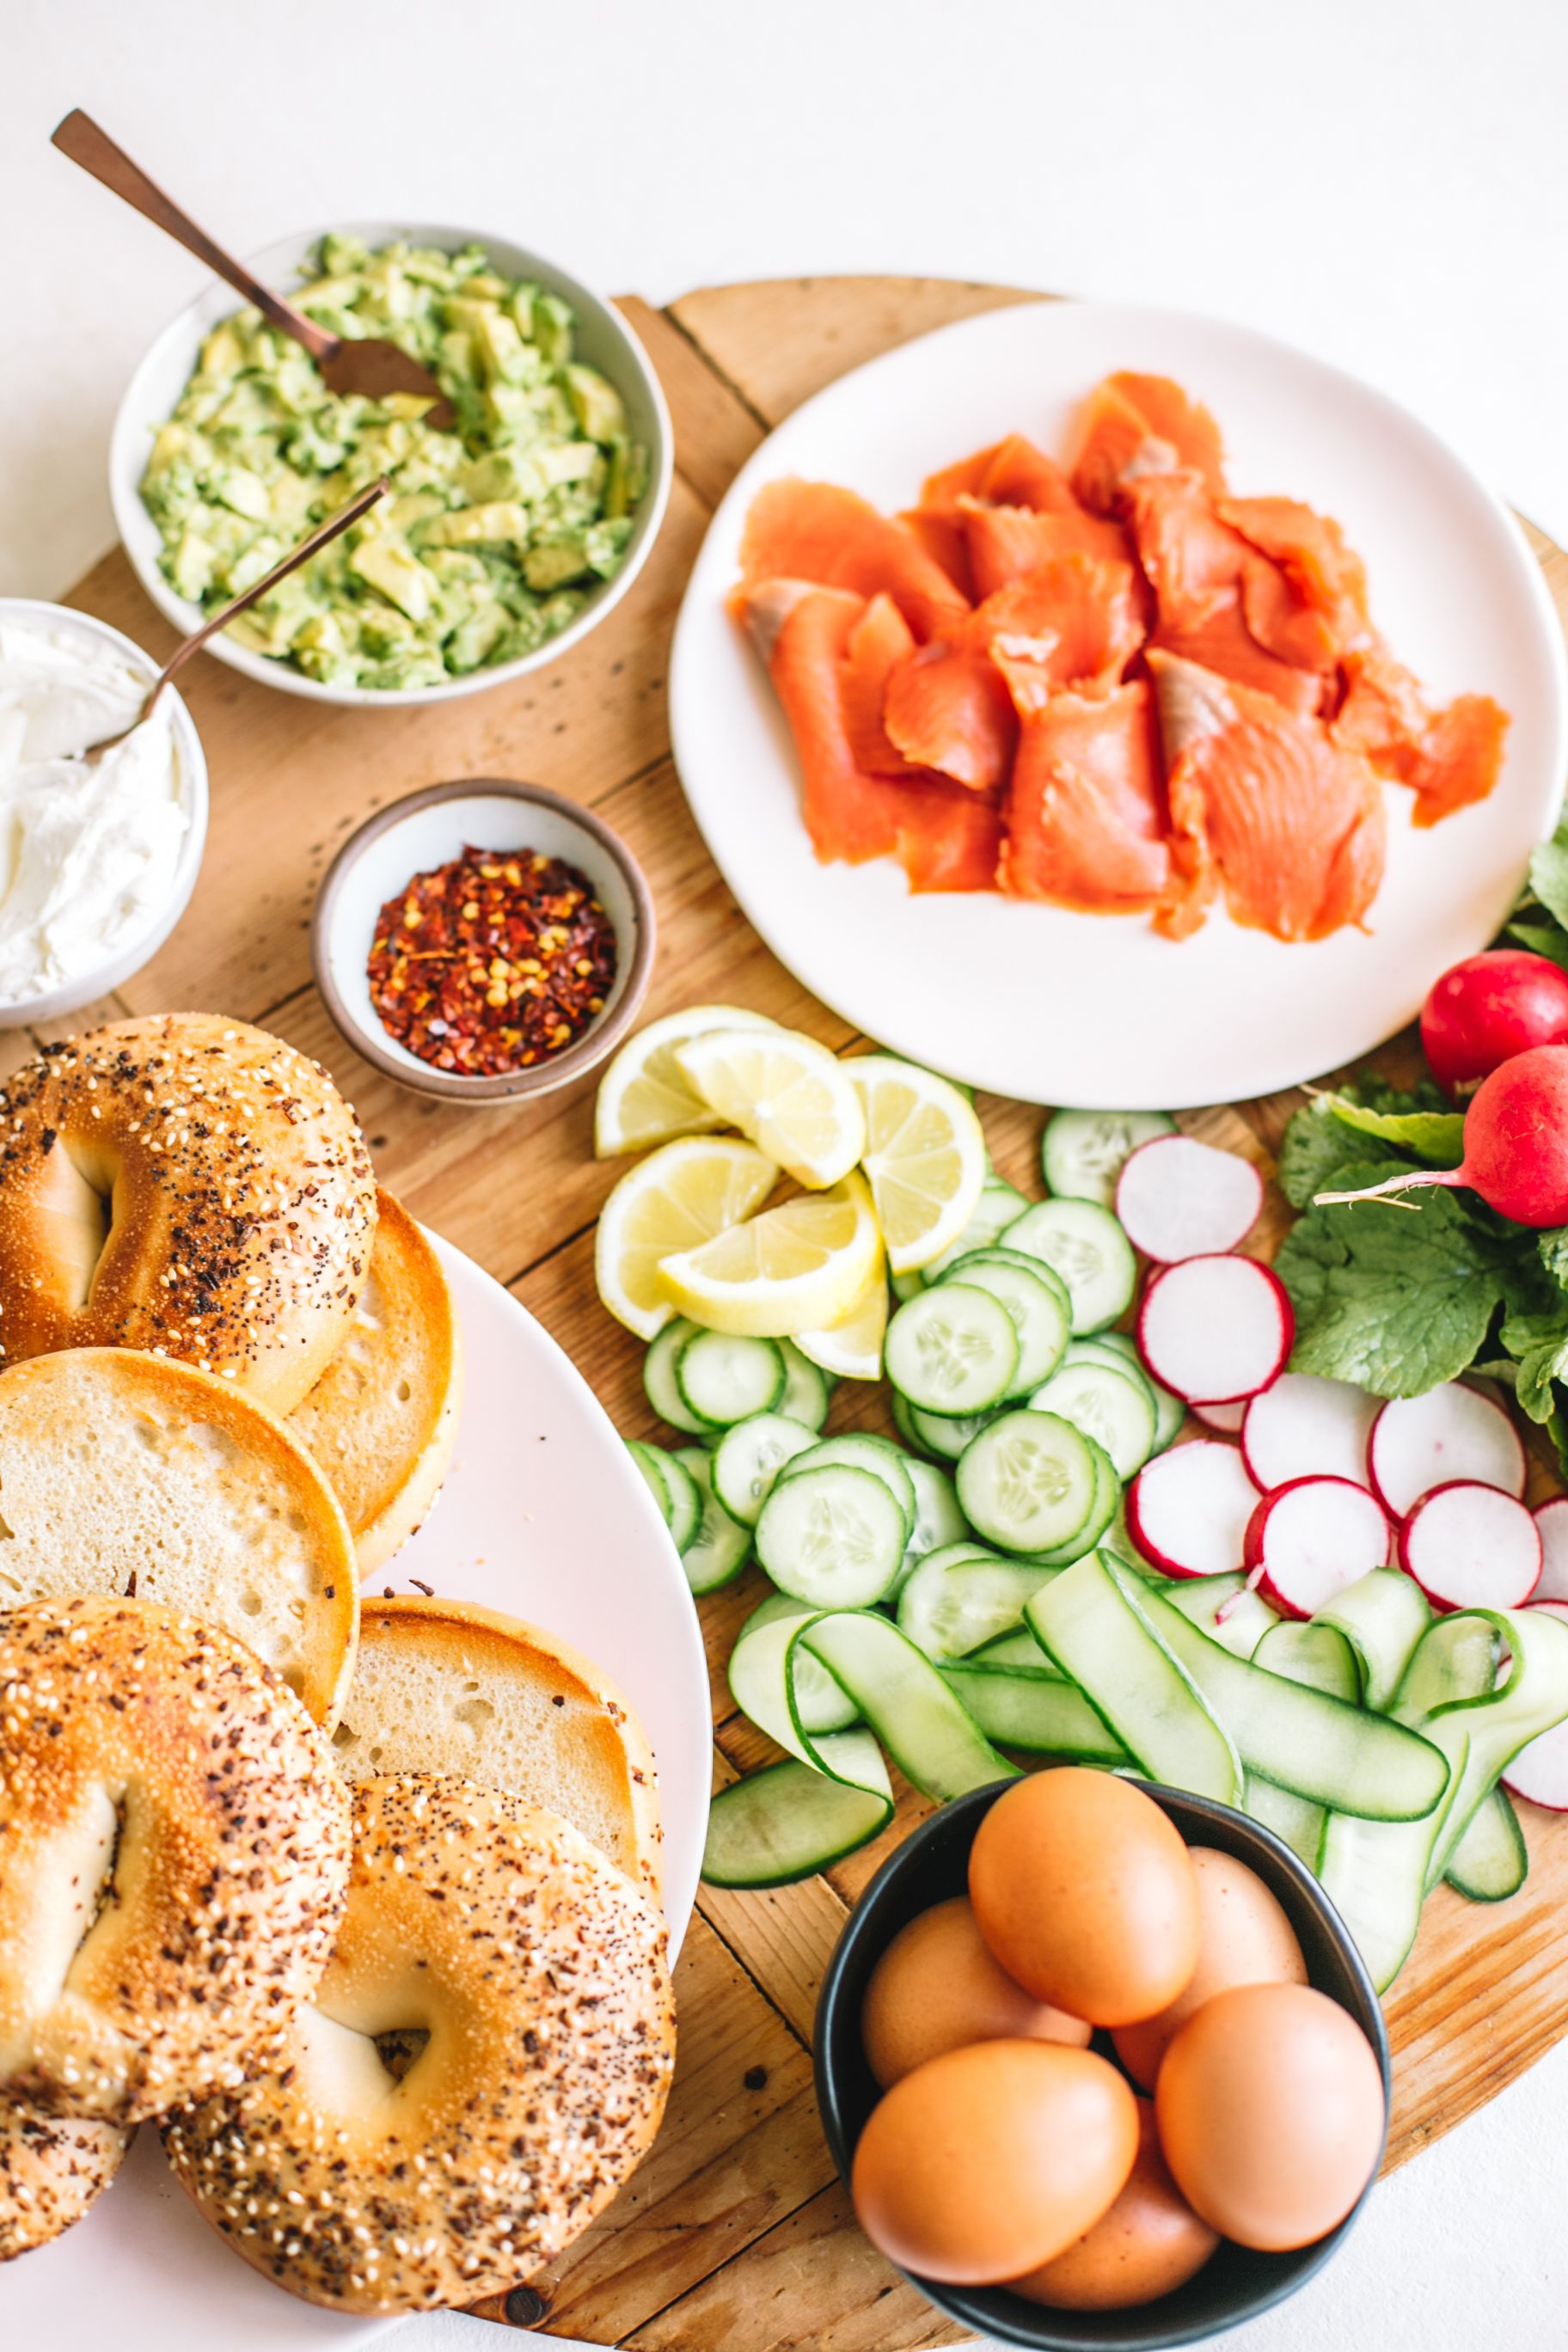 Smoked Salmon Bagel with Mashed Avocado images